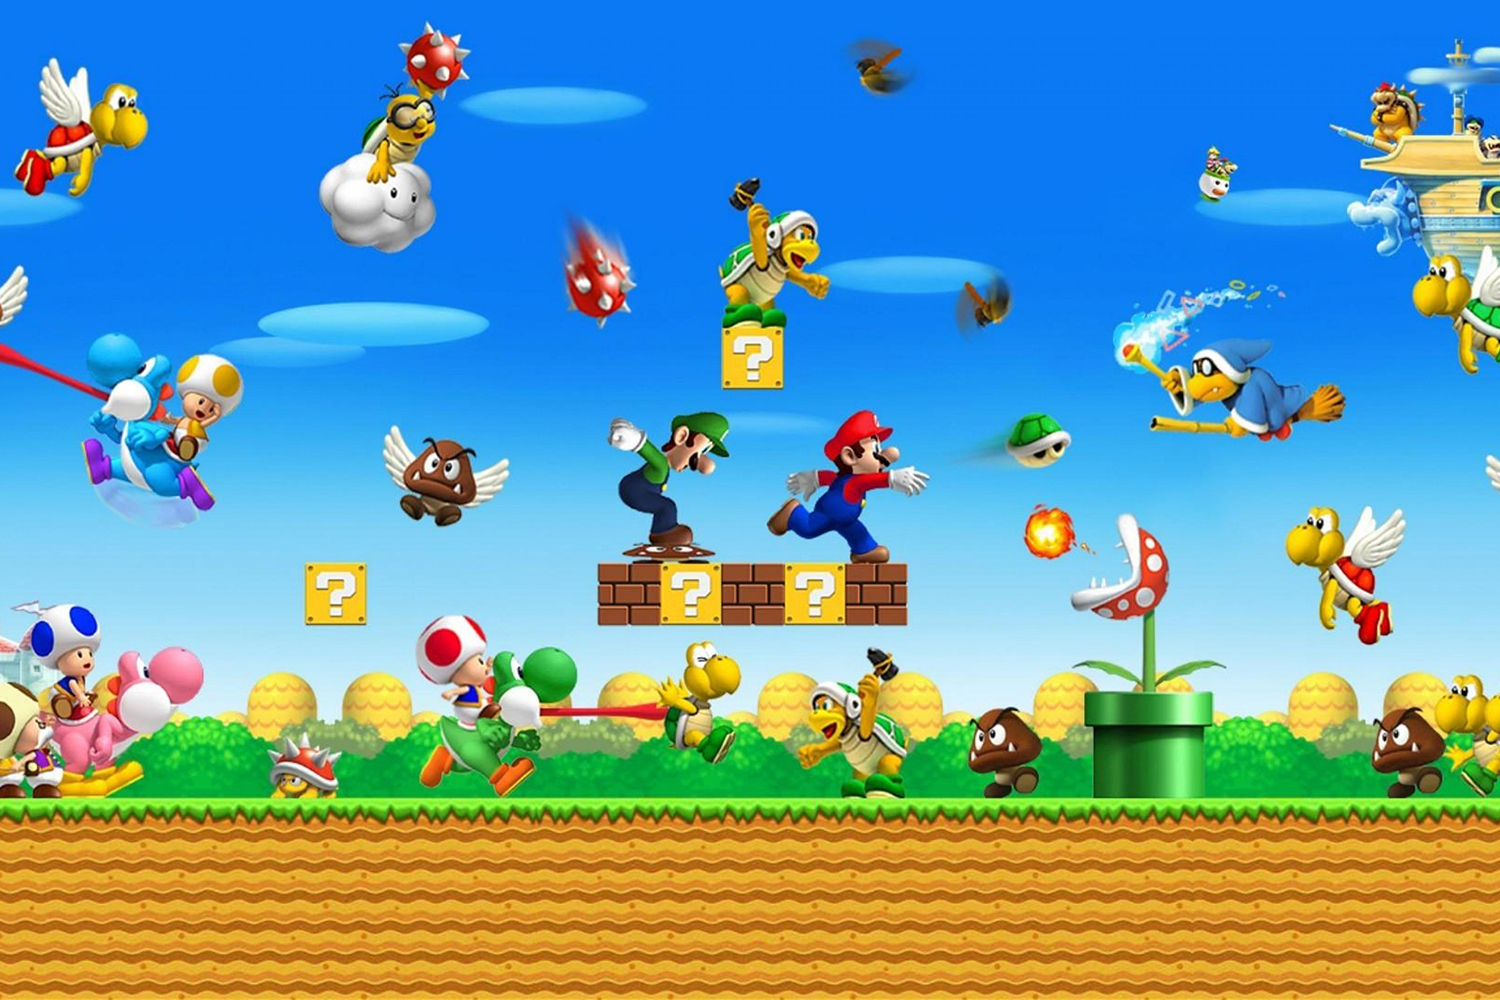 Dark Horse's Mario encyclopedia is coming West in October screenshot